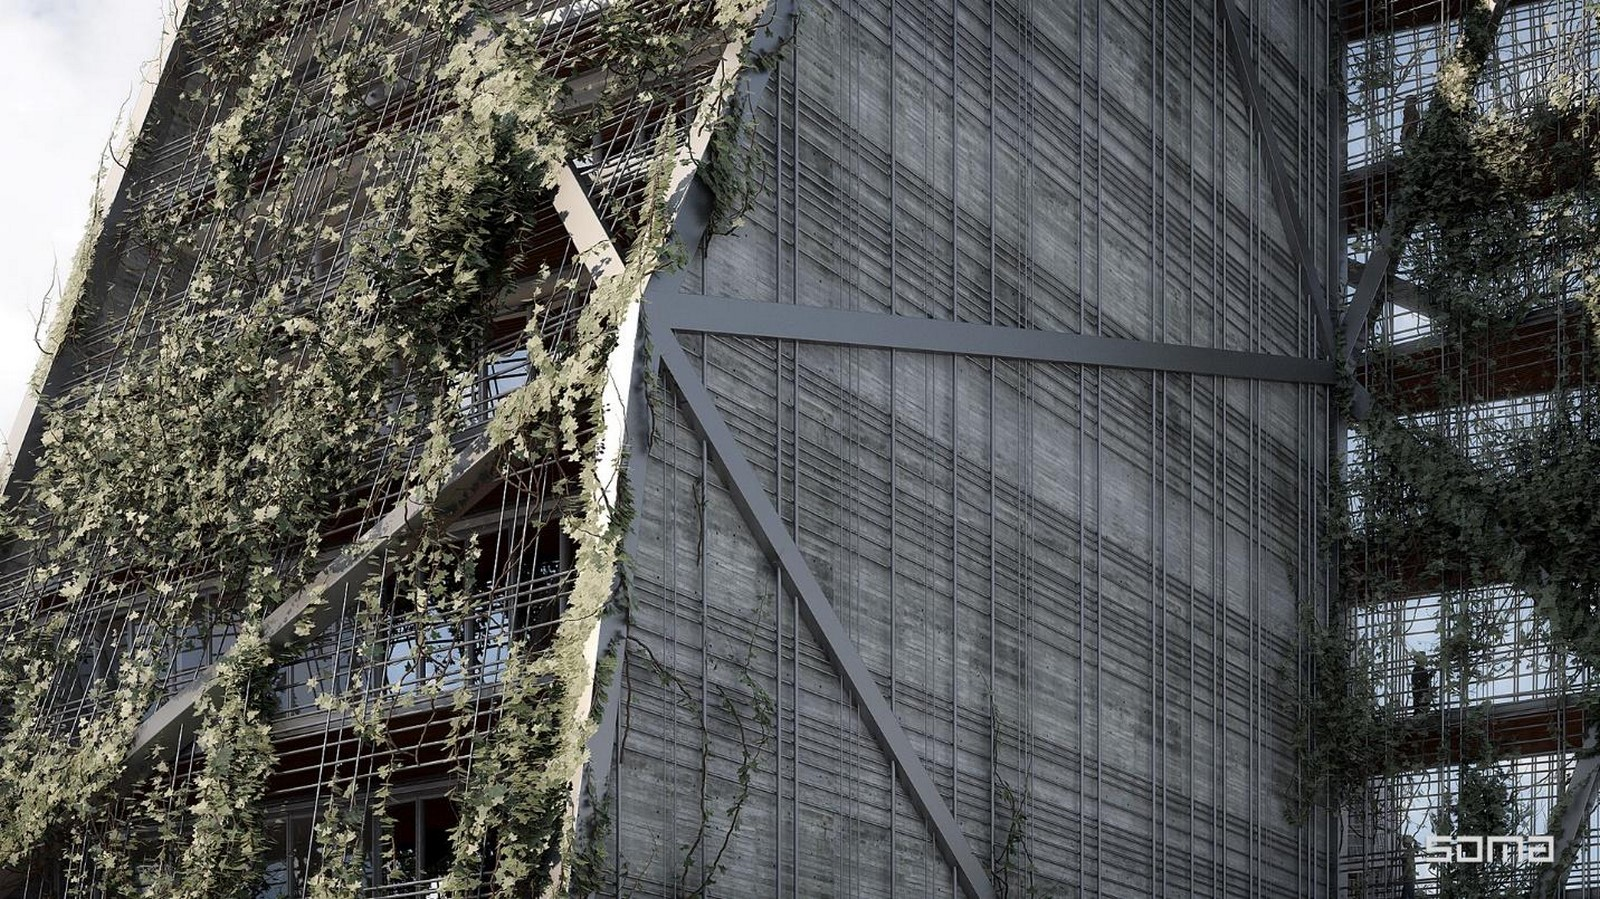 Pollux and Castor by SOMA: The Chiseled architecture - Ssheet4